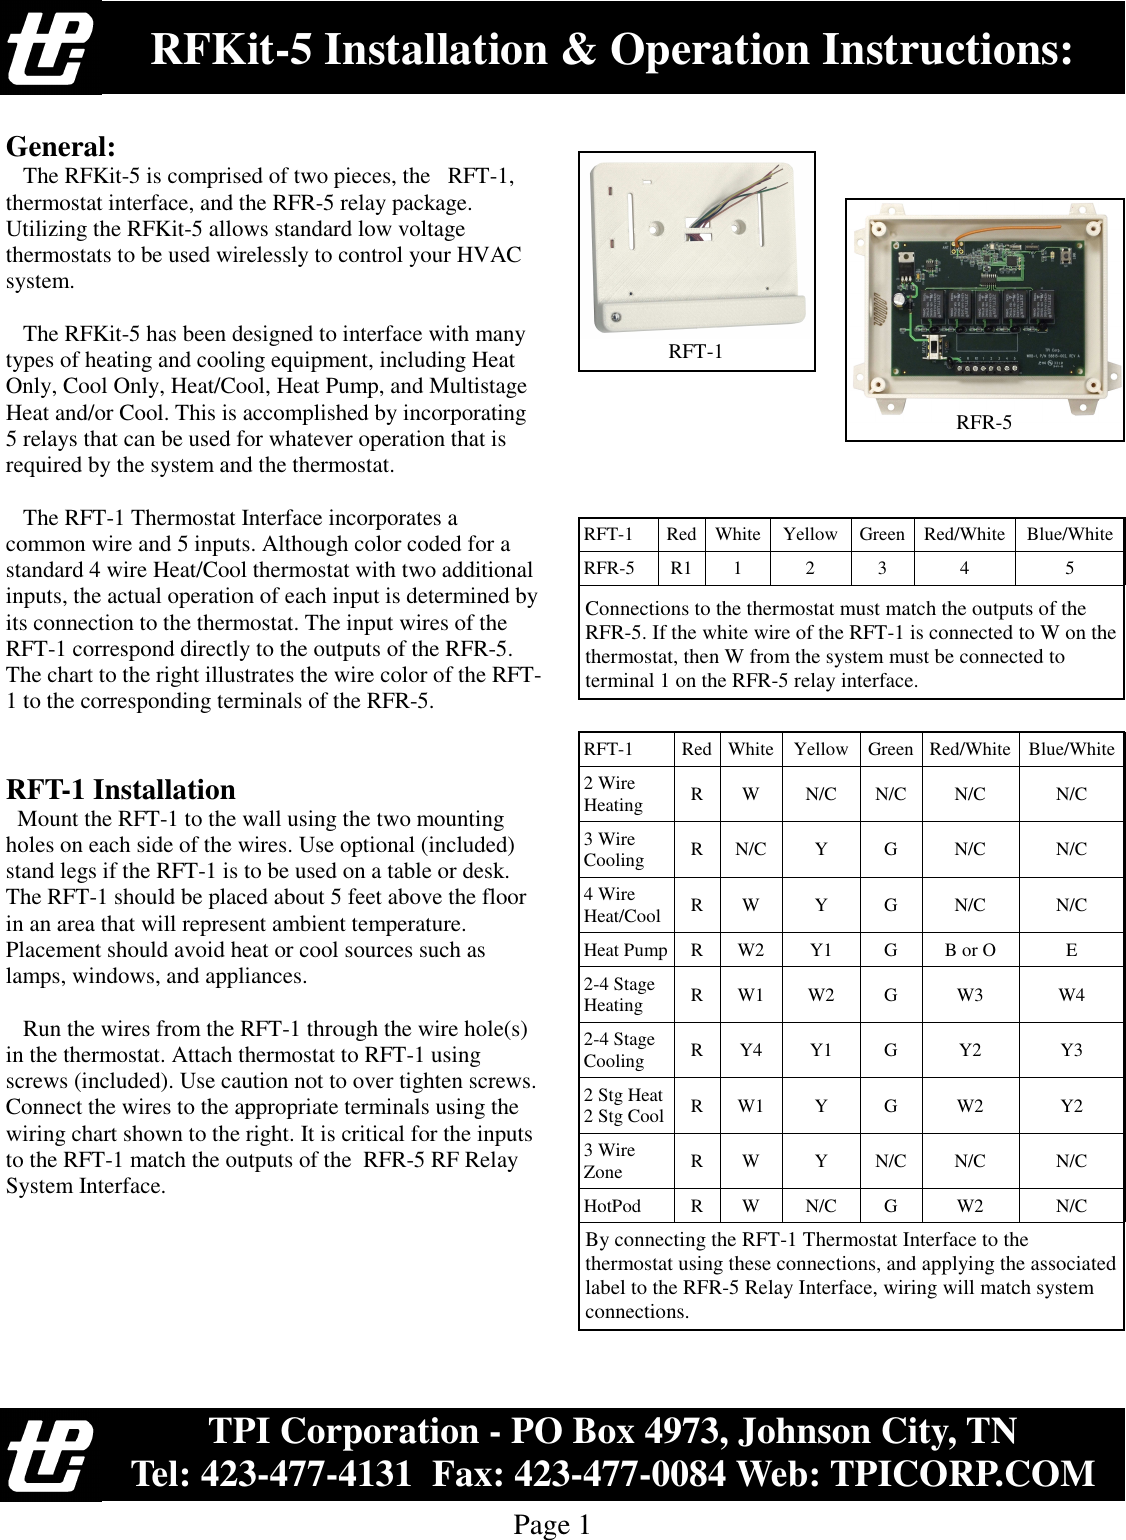 TPI RFKIT-5 RFT-1 and RFR-5 P Kit R-C-R1 1-2-3-4-5 Connection